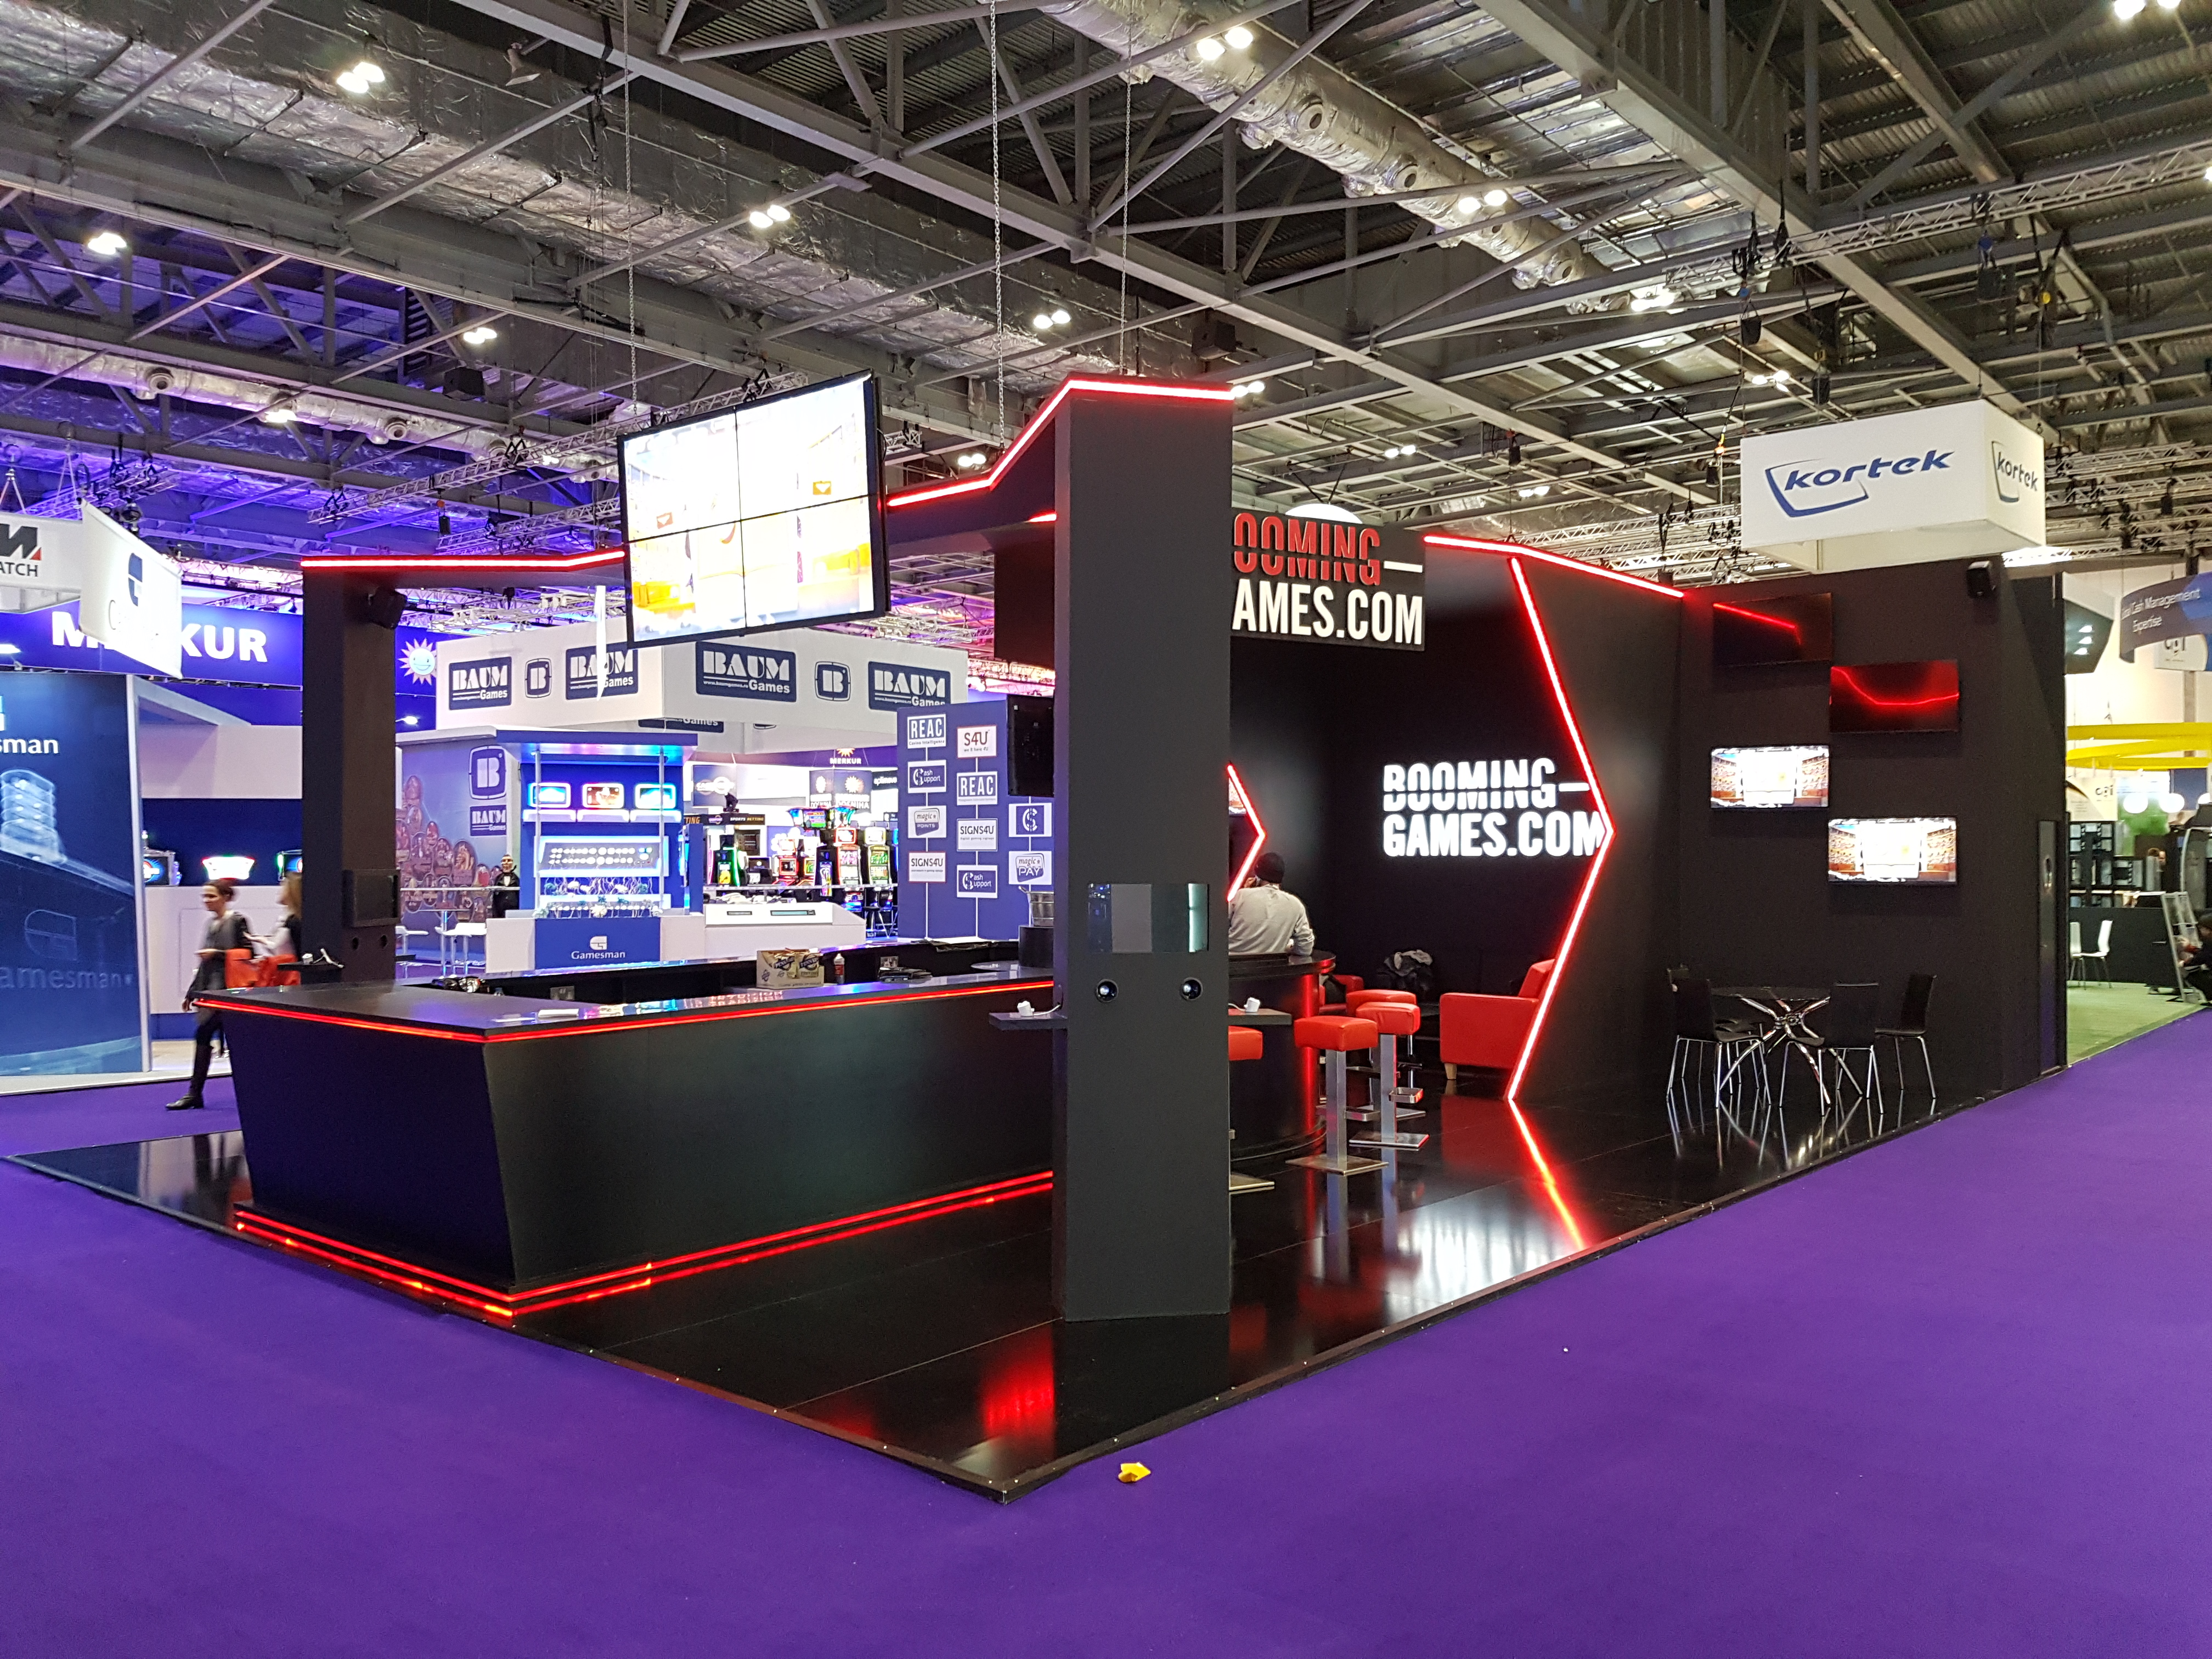 Exhibition Stand Fitter Jobs London : Booming games ice london expose designs exhibition